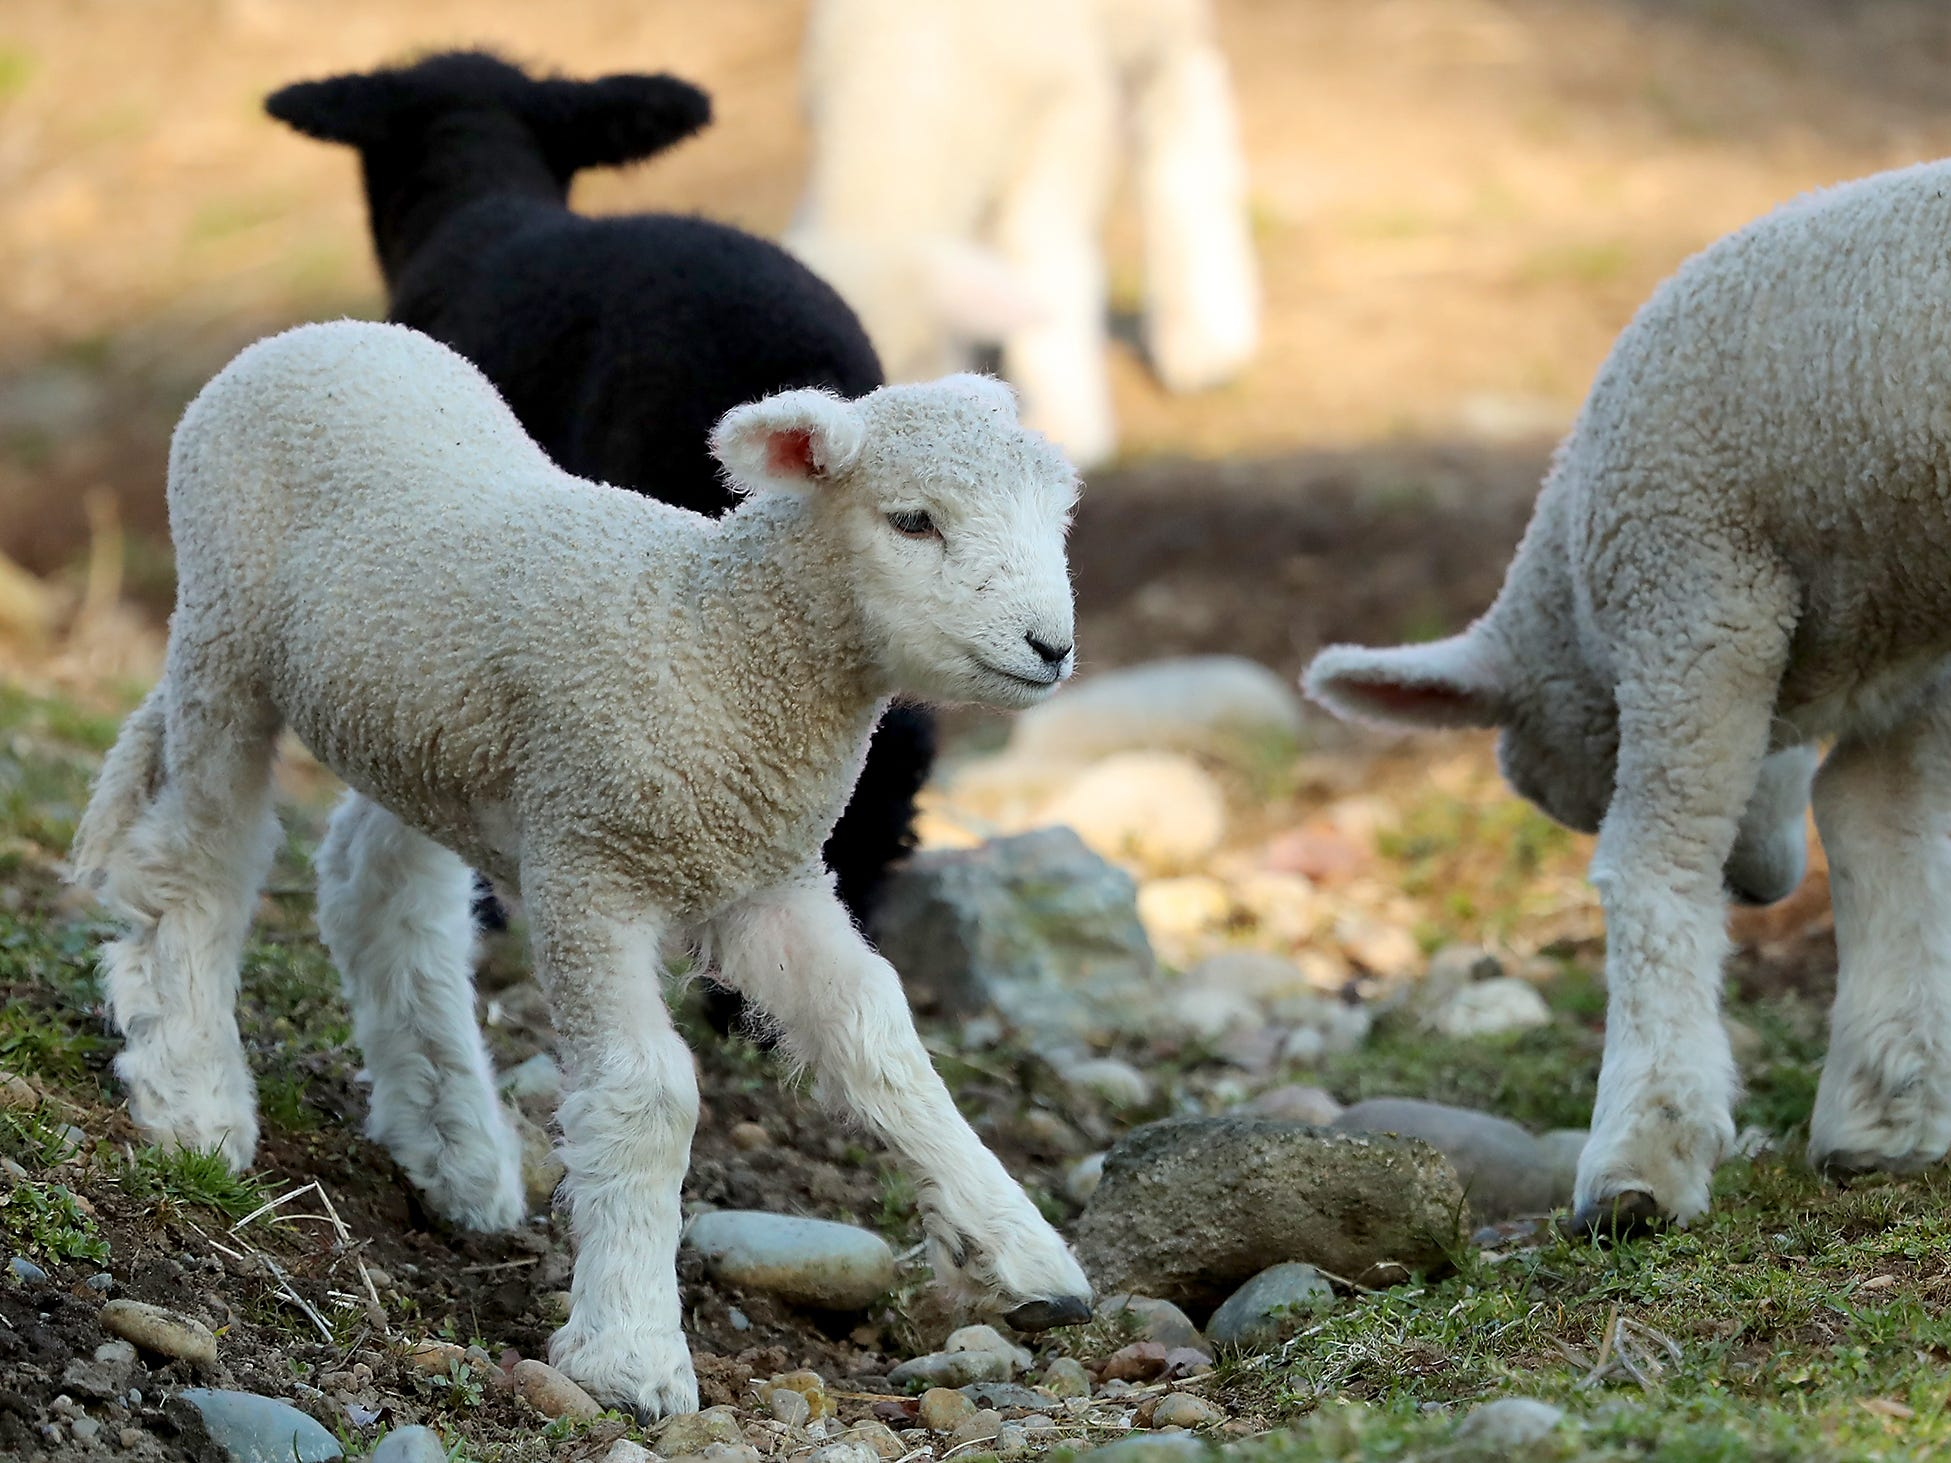 Lambs frolic in their pasture at Scandia Creek Farm in Pouslbo on March 18, 2019.